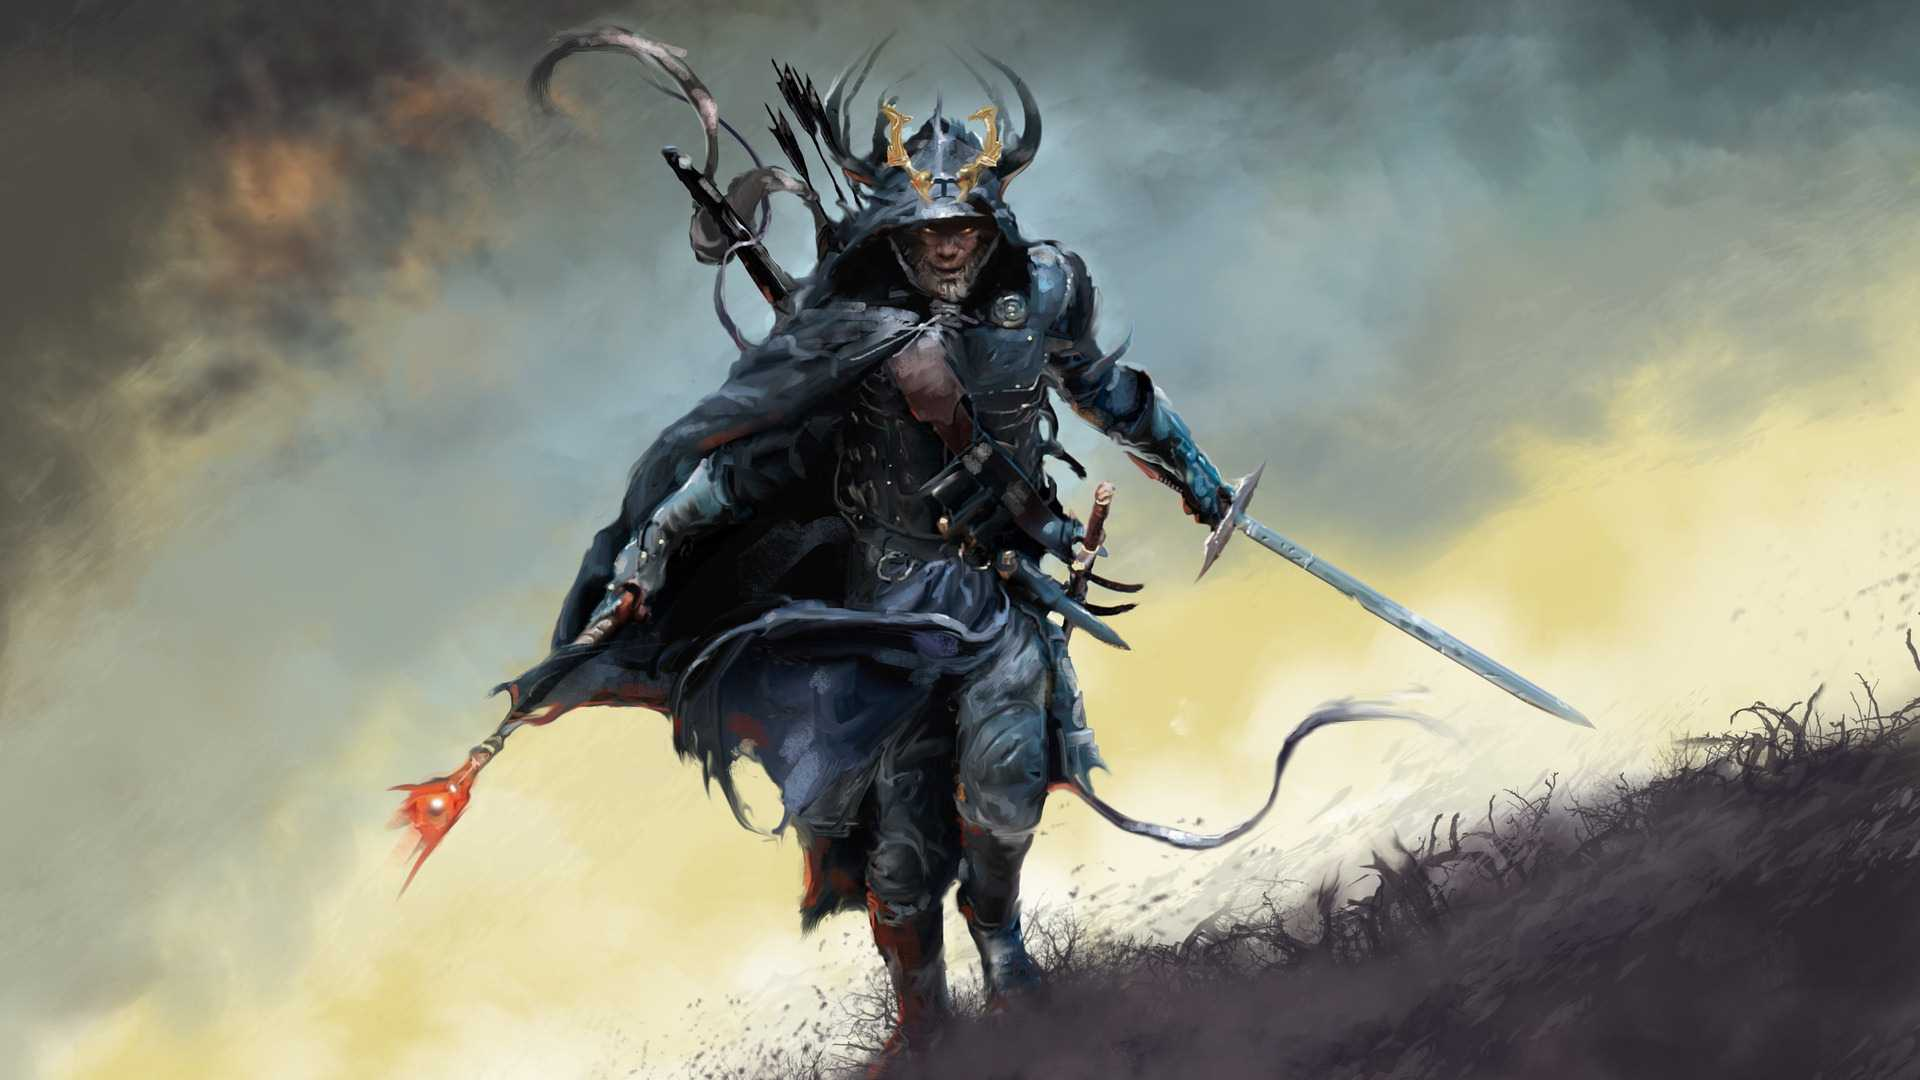 Cool Warrior Wallpapers - Top Free Cool Warrior ...